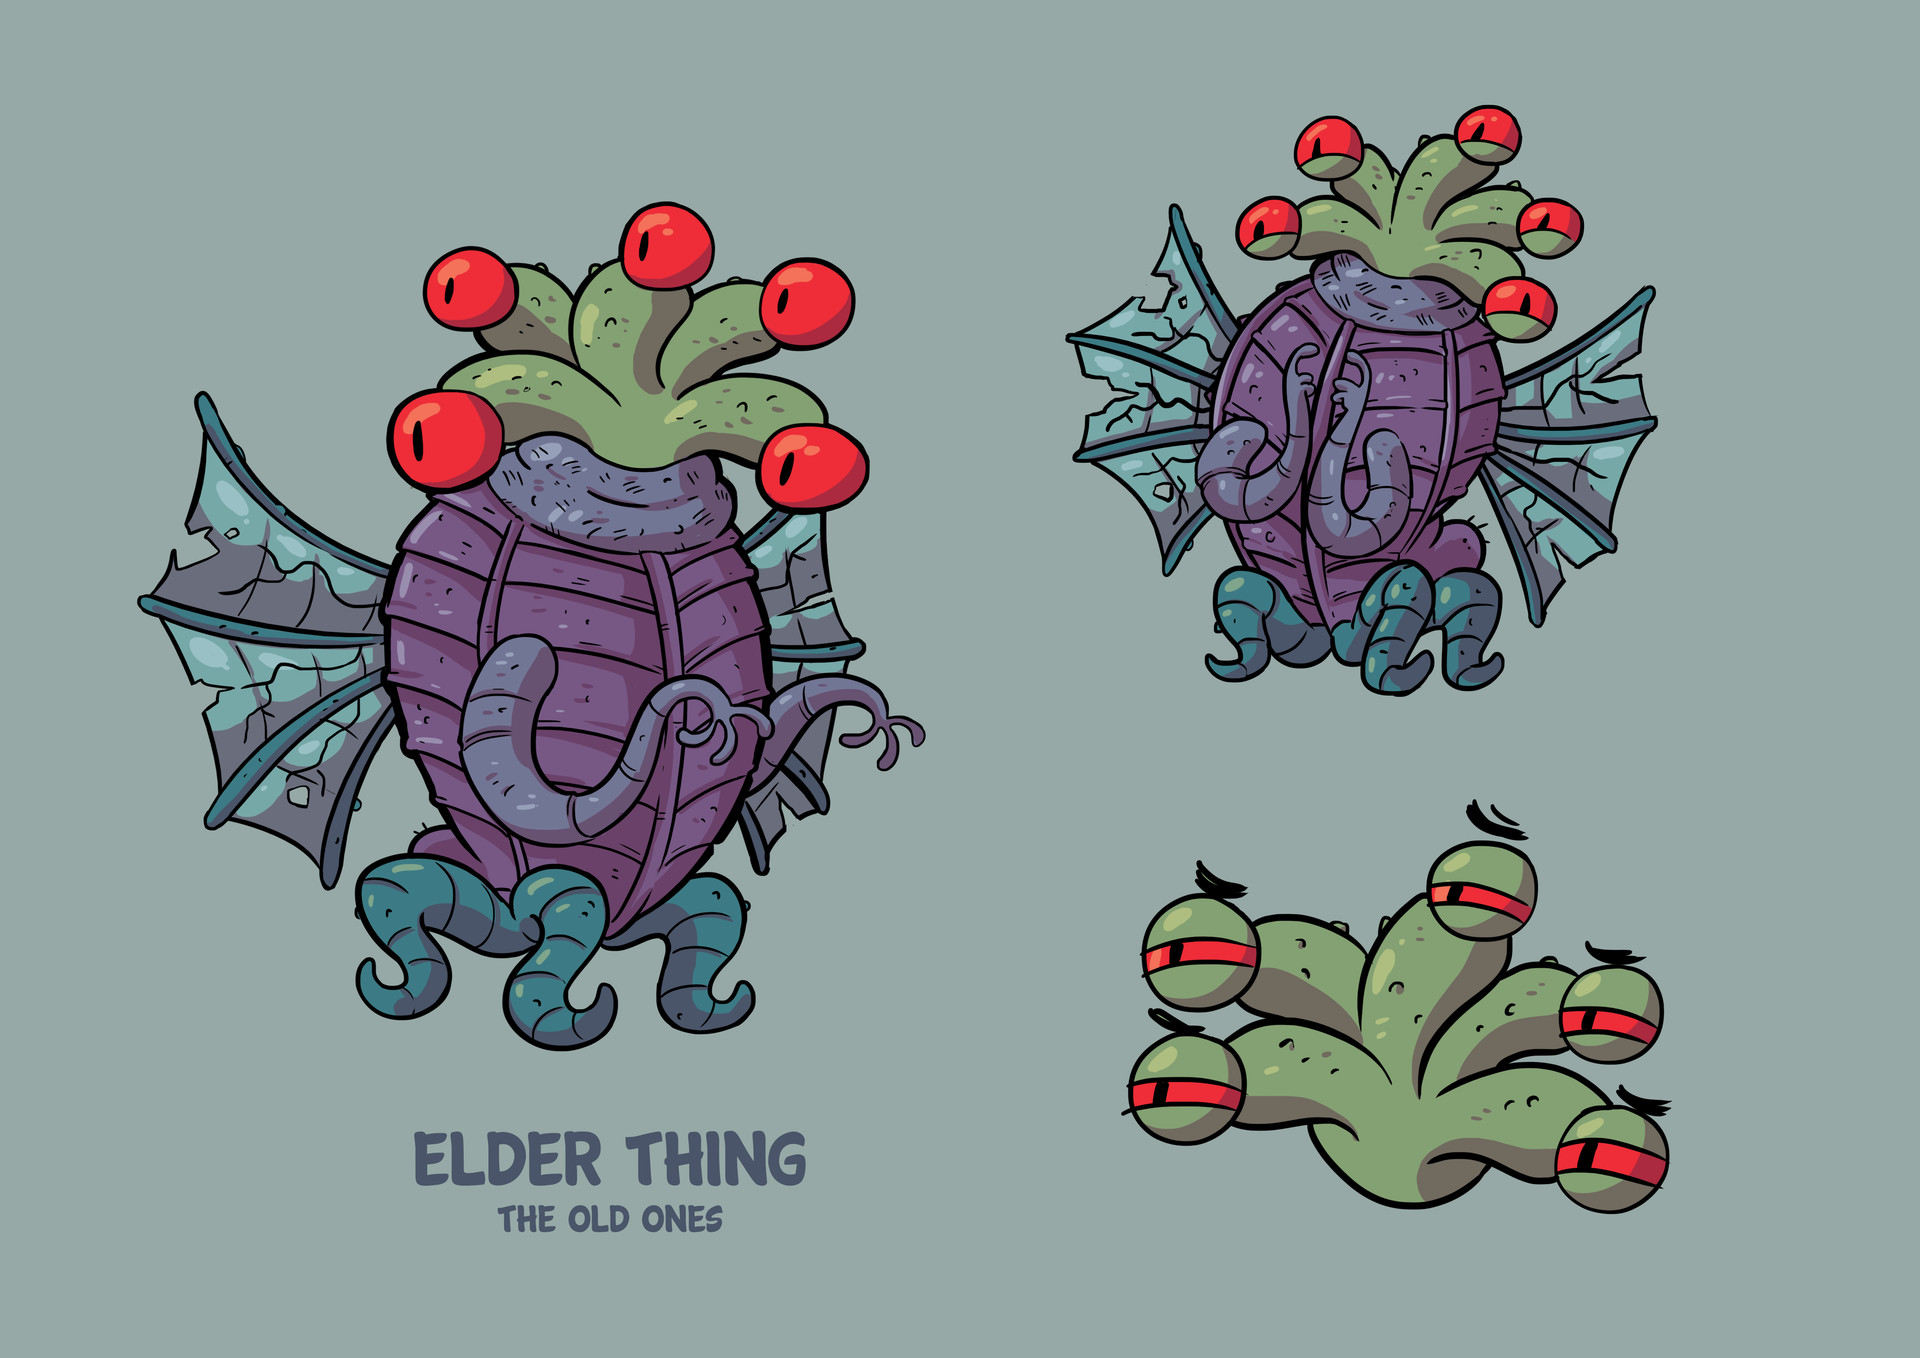 Elder Thing - The Old Ones